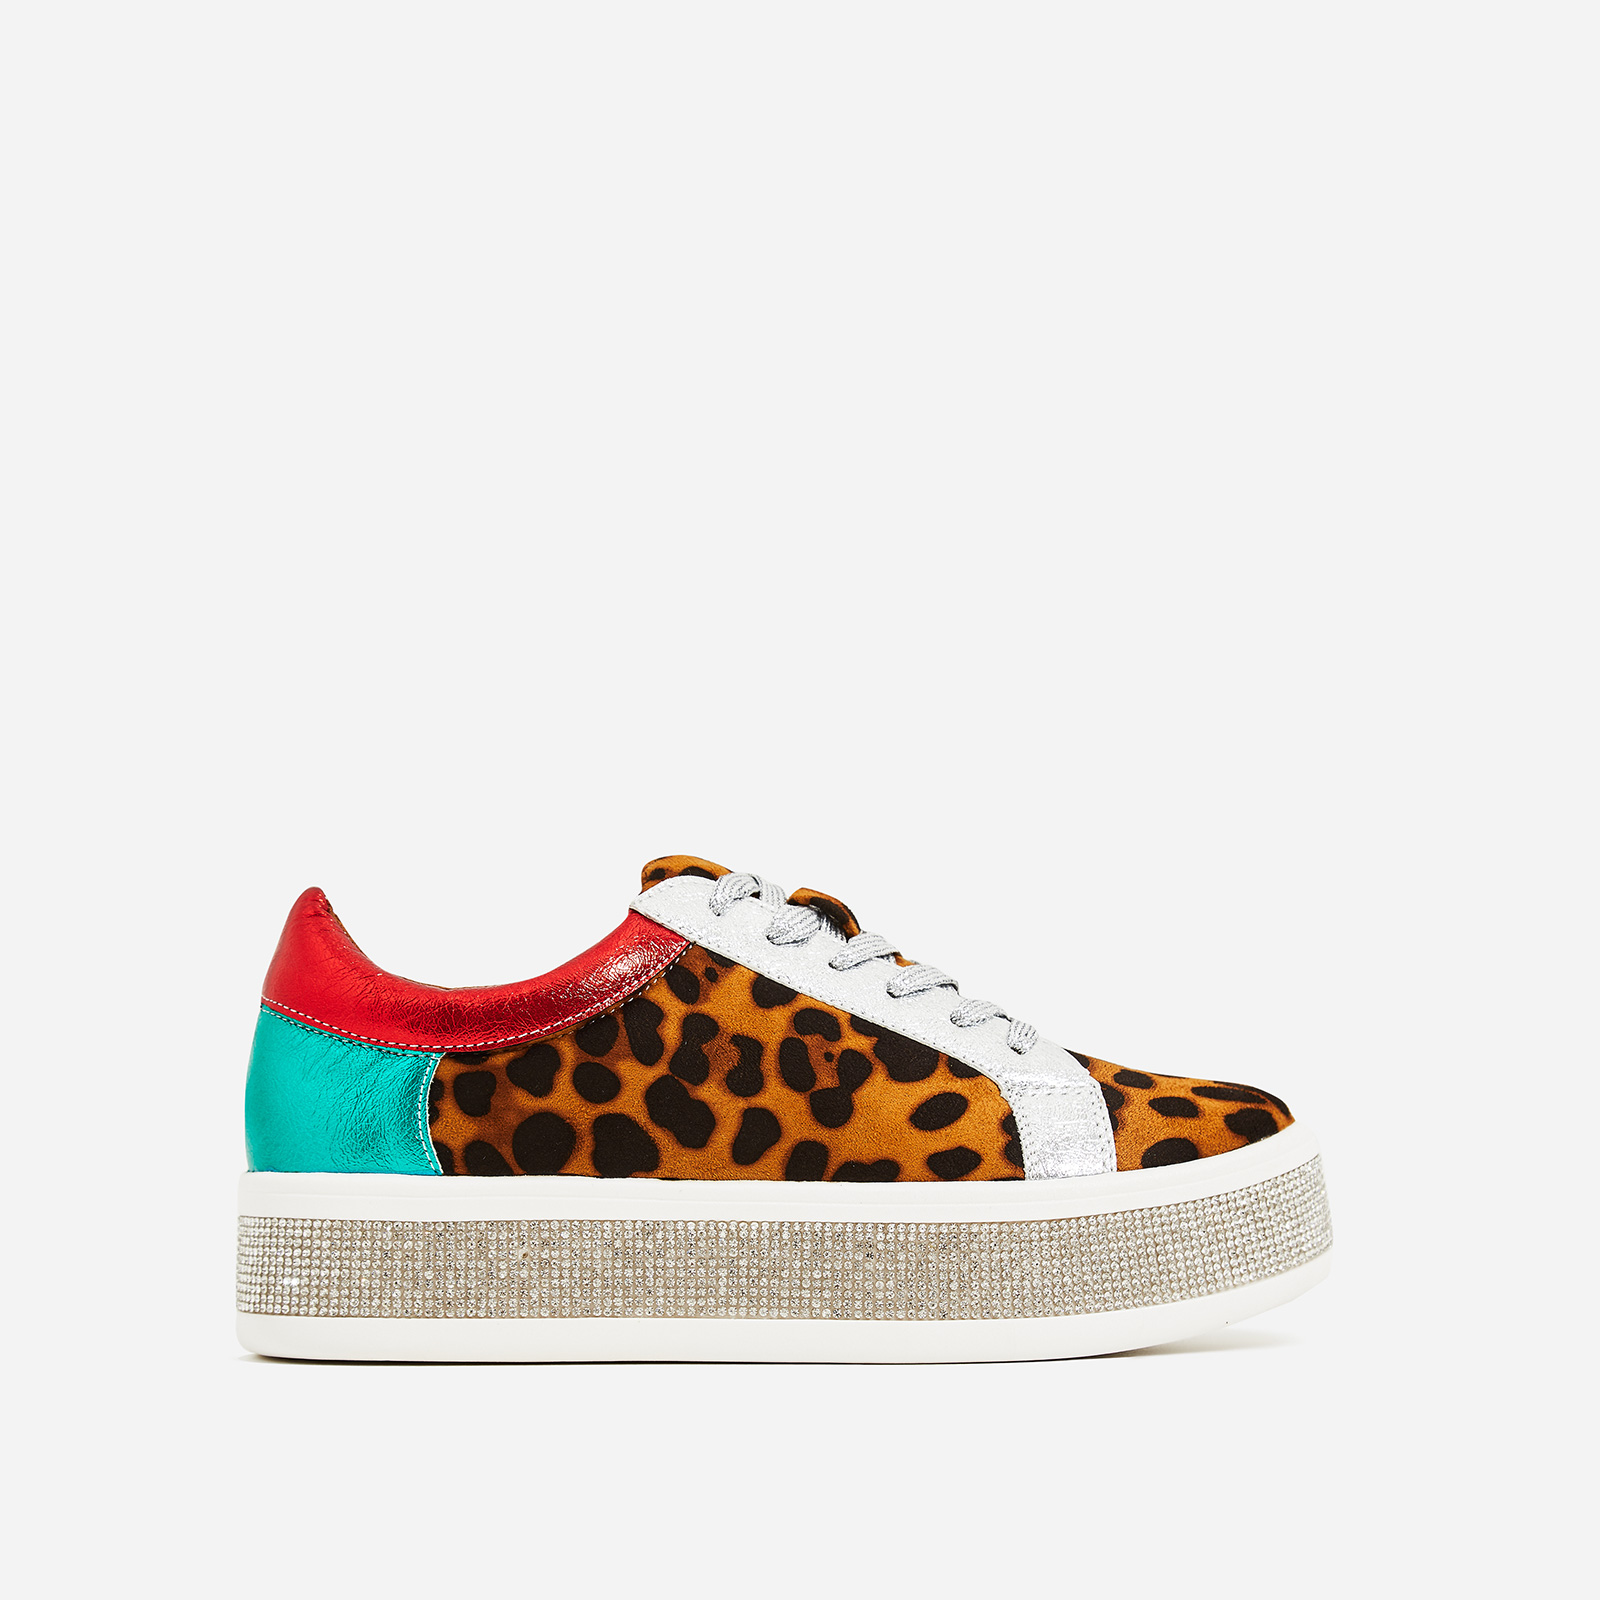 Kojo Platform Diamante Detail Trainers In Tan Leopard Print Faux Suede